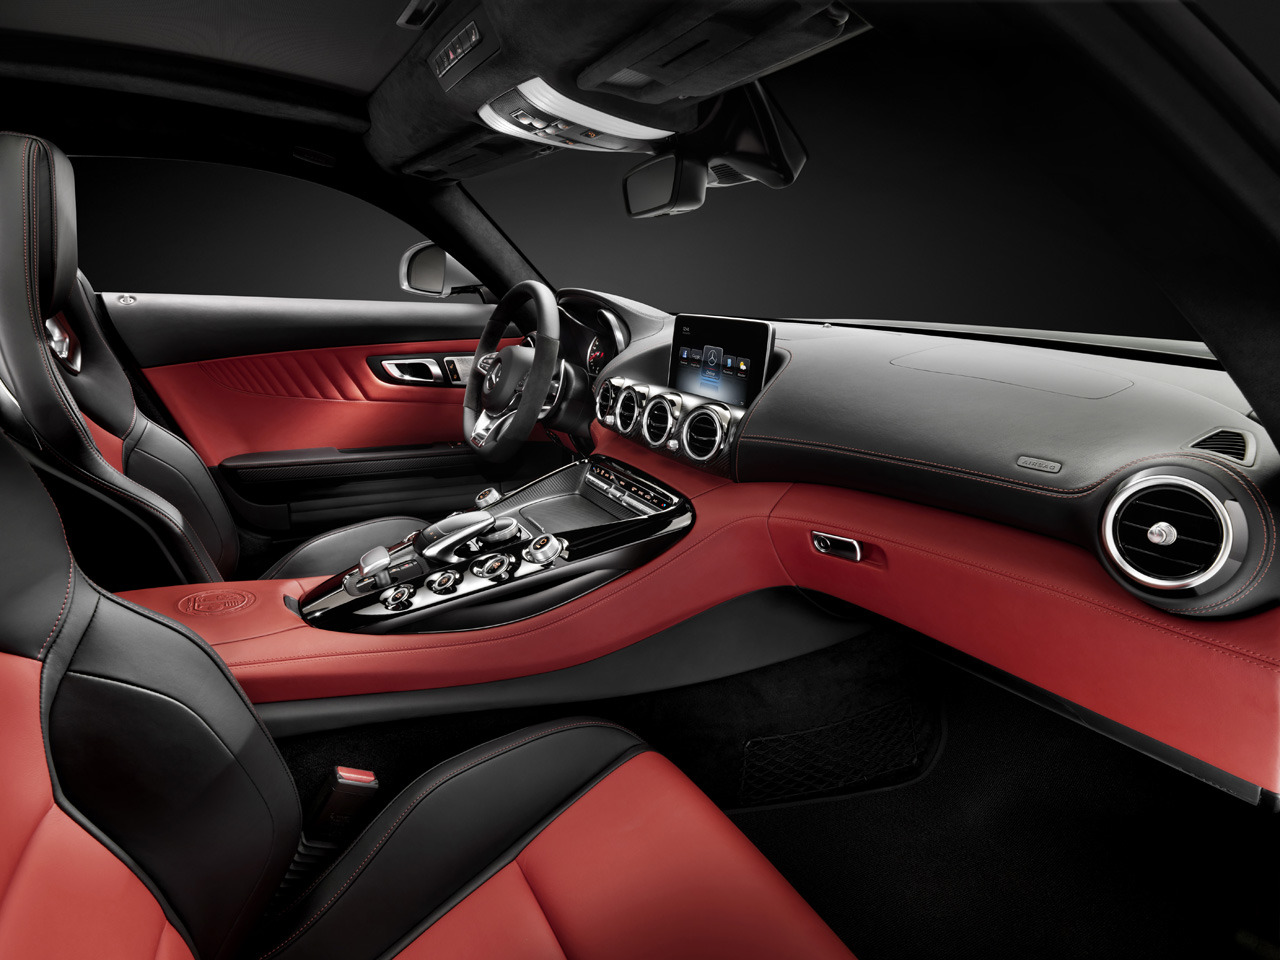 AMG Teases Interior Of Upcoming GT Sports Car